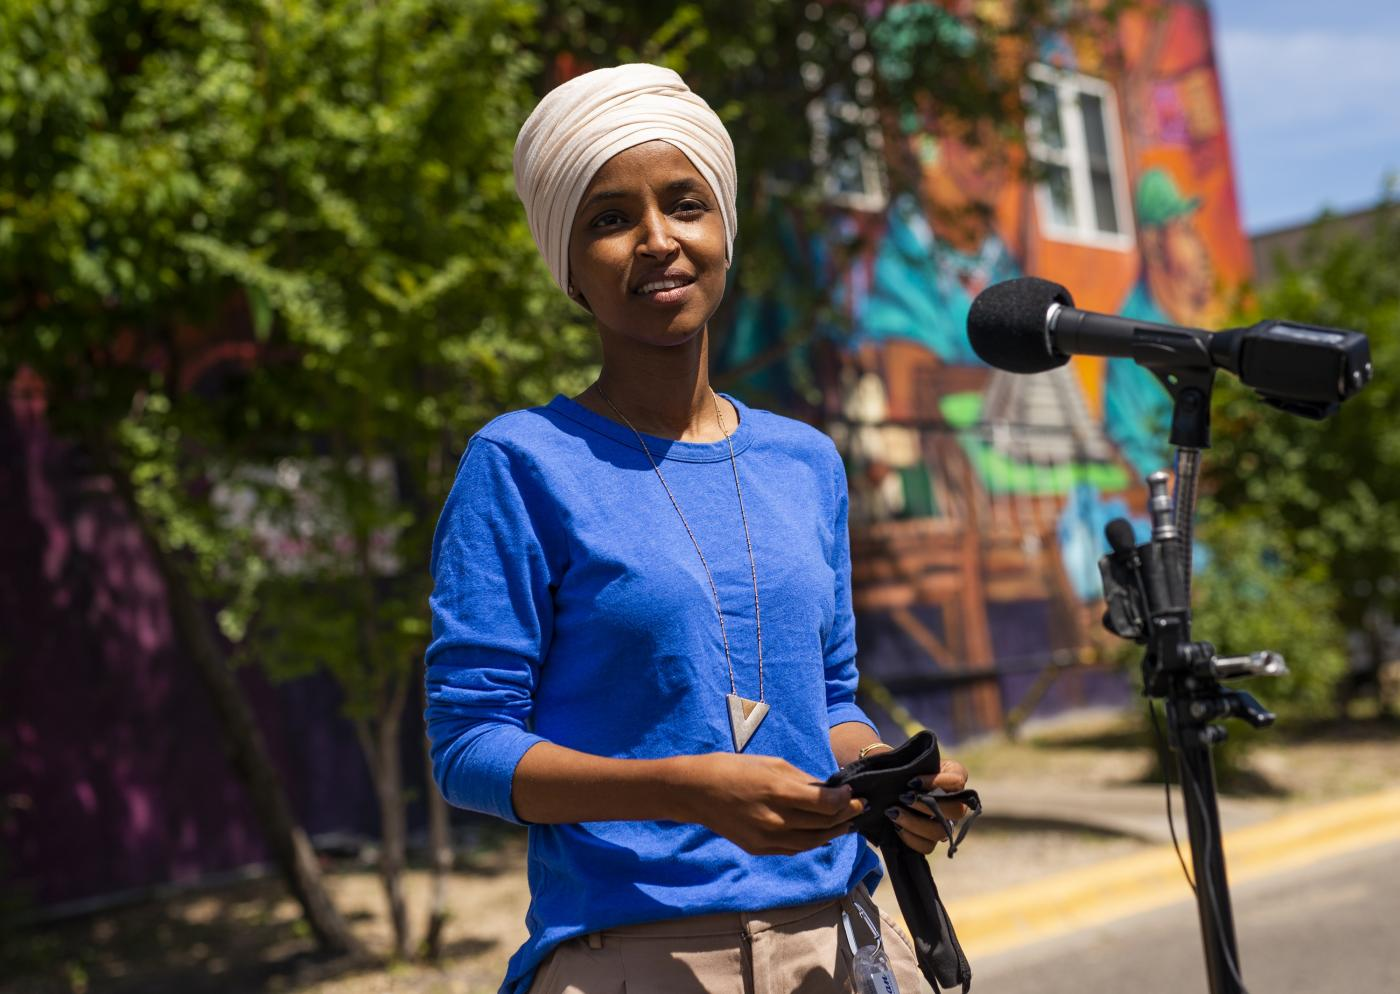 Ilhan Omar Comfortably Wins Re-Election Race